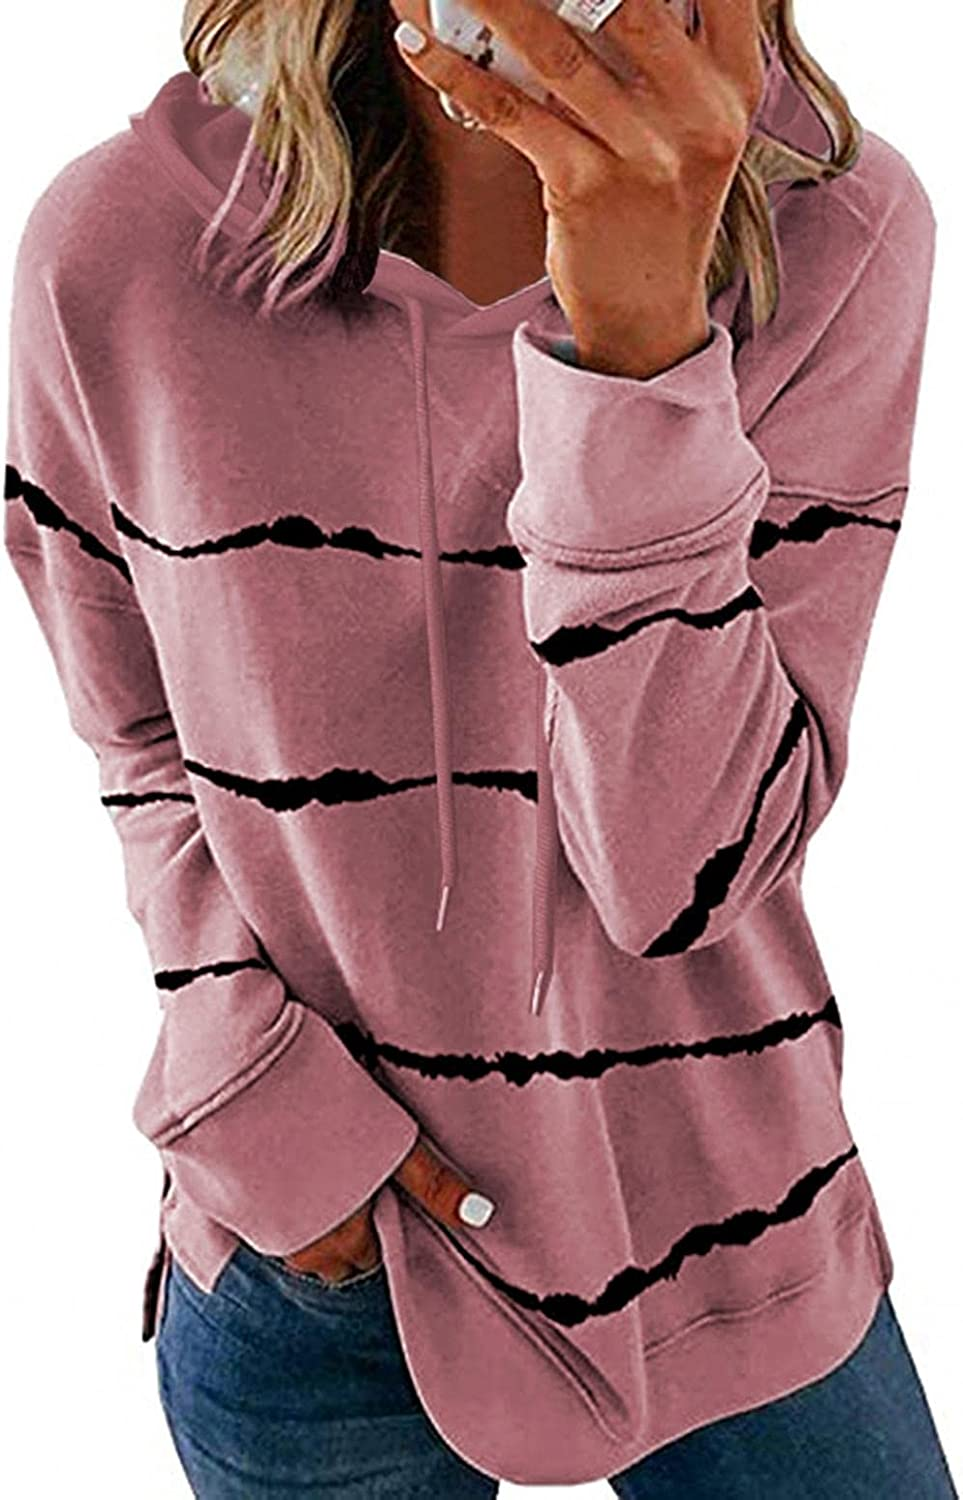 Gibobby Hoodies for Women Pullover Drawstring Casual Lightweight Sweatshirts Long Sleeve Zip V Neck Hooded Jacket Coats